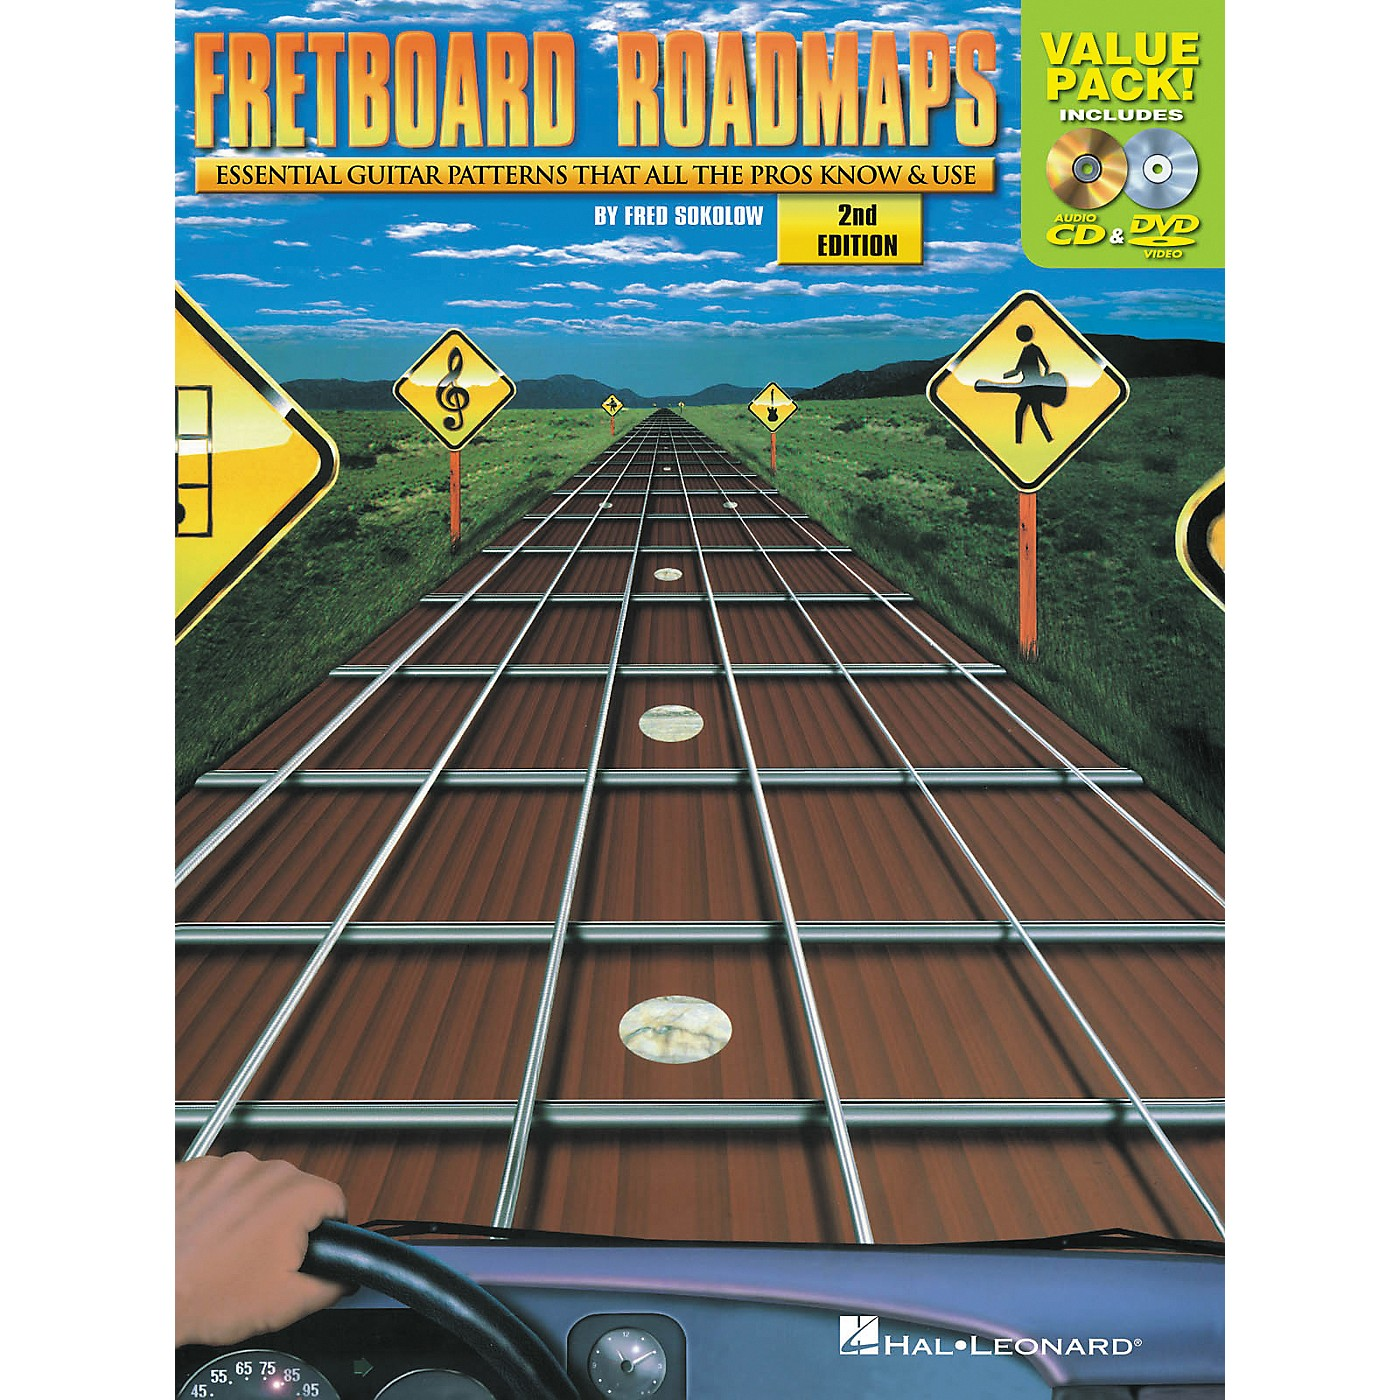 Hal Leonard Fretboard Roadmaps Value Pack (Book/CD/DVD) thumbnail